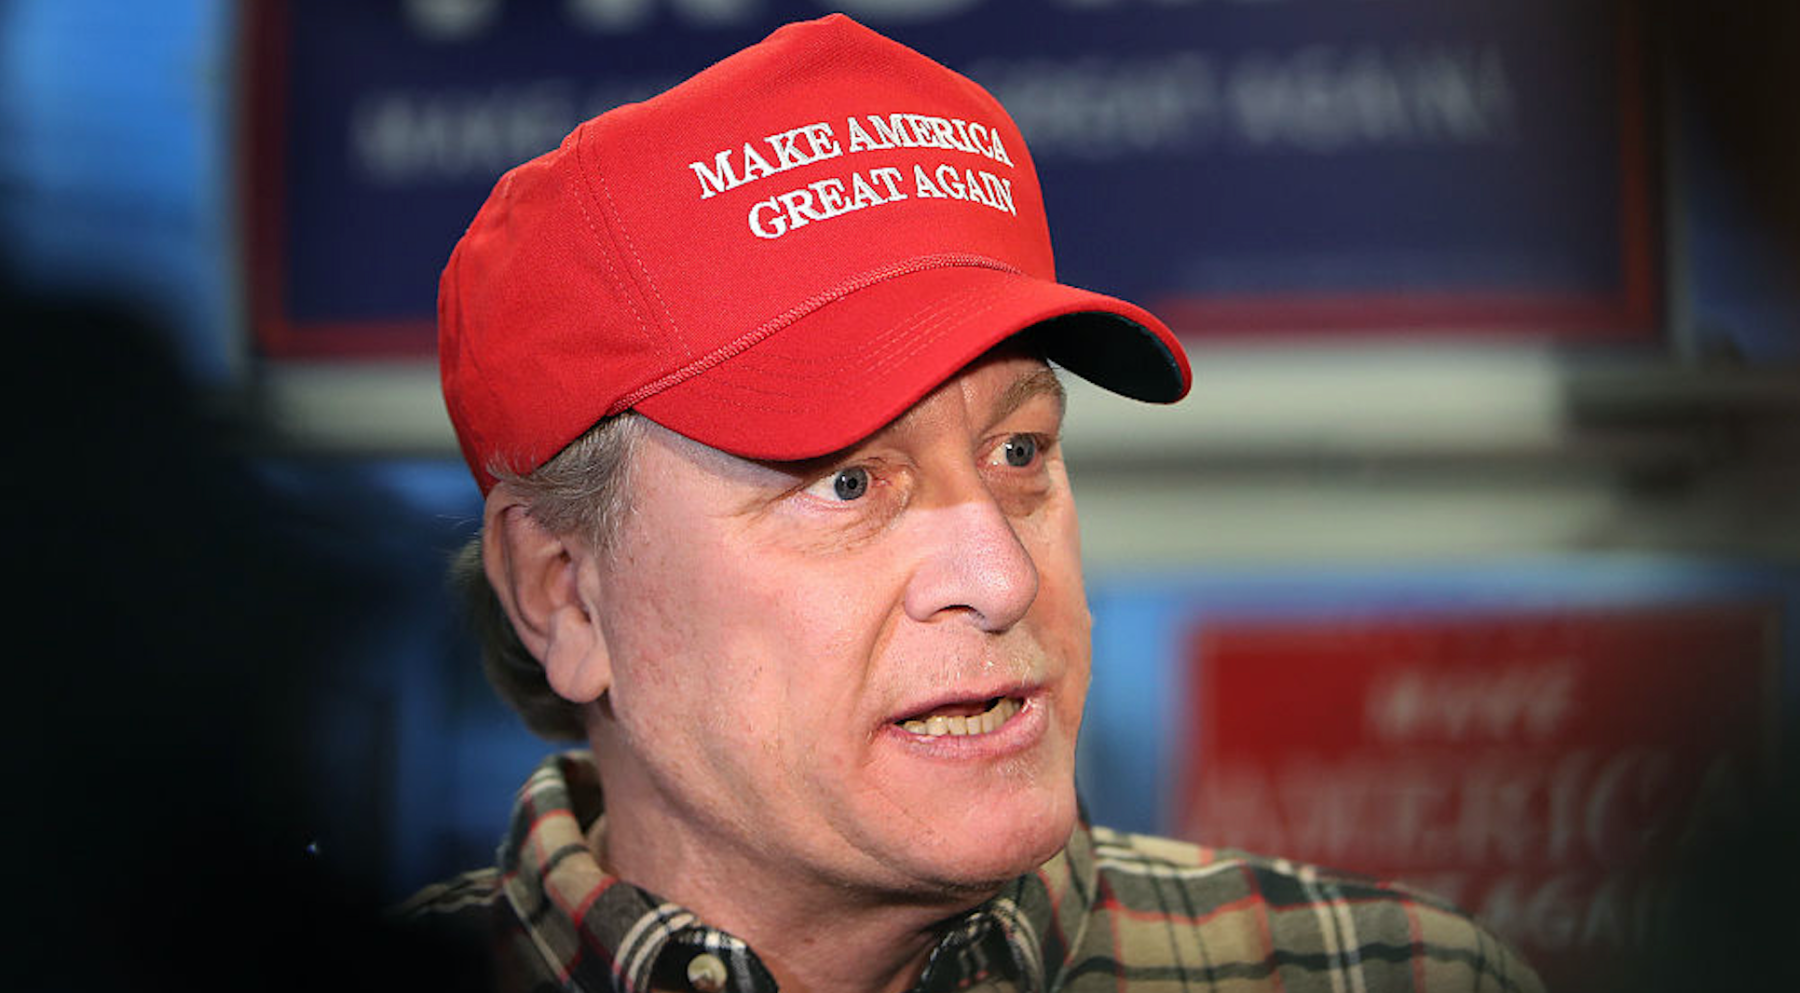 SALEM, NH - OCTOBER 18: Former Boston Red Sox pitcher Curt Schilling speaks to the gathered media as he makes an appearance at a Republican Party office in Salem, NH to stump for the presidential candidacy of Donald Trump on Oct. 18, 2016. (Photo by Jim Davis/The Boston Globe via Getty Images)